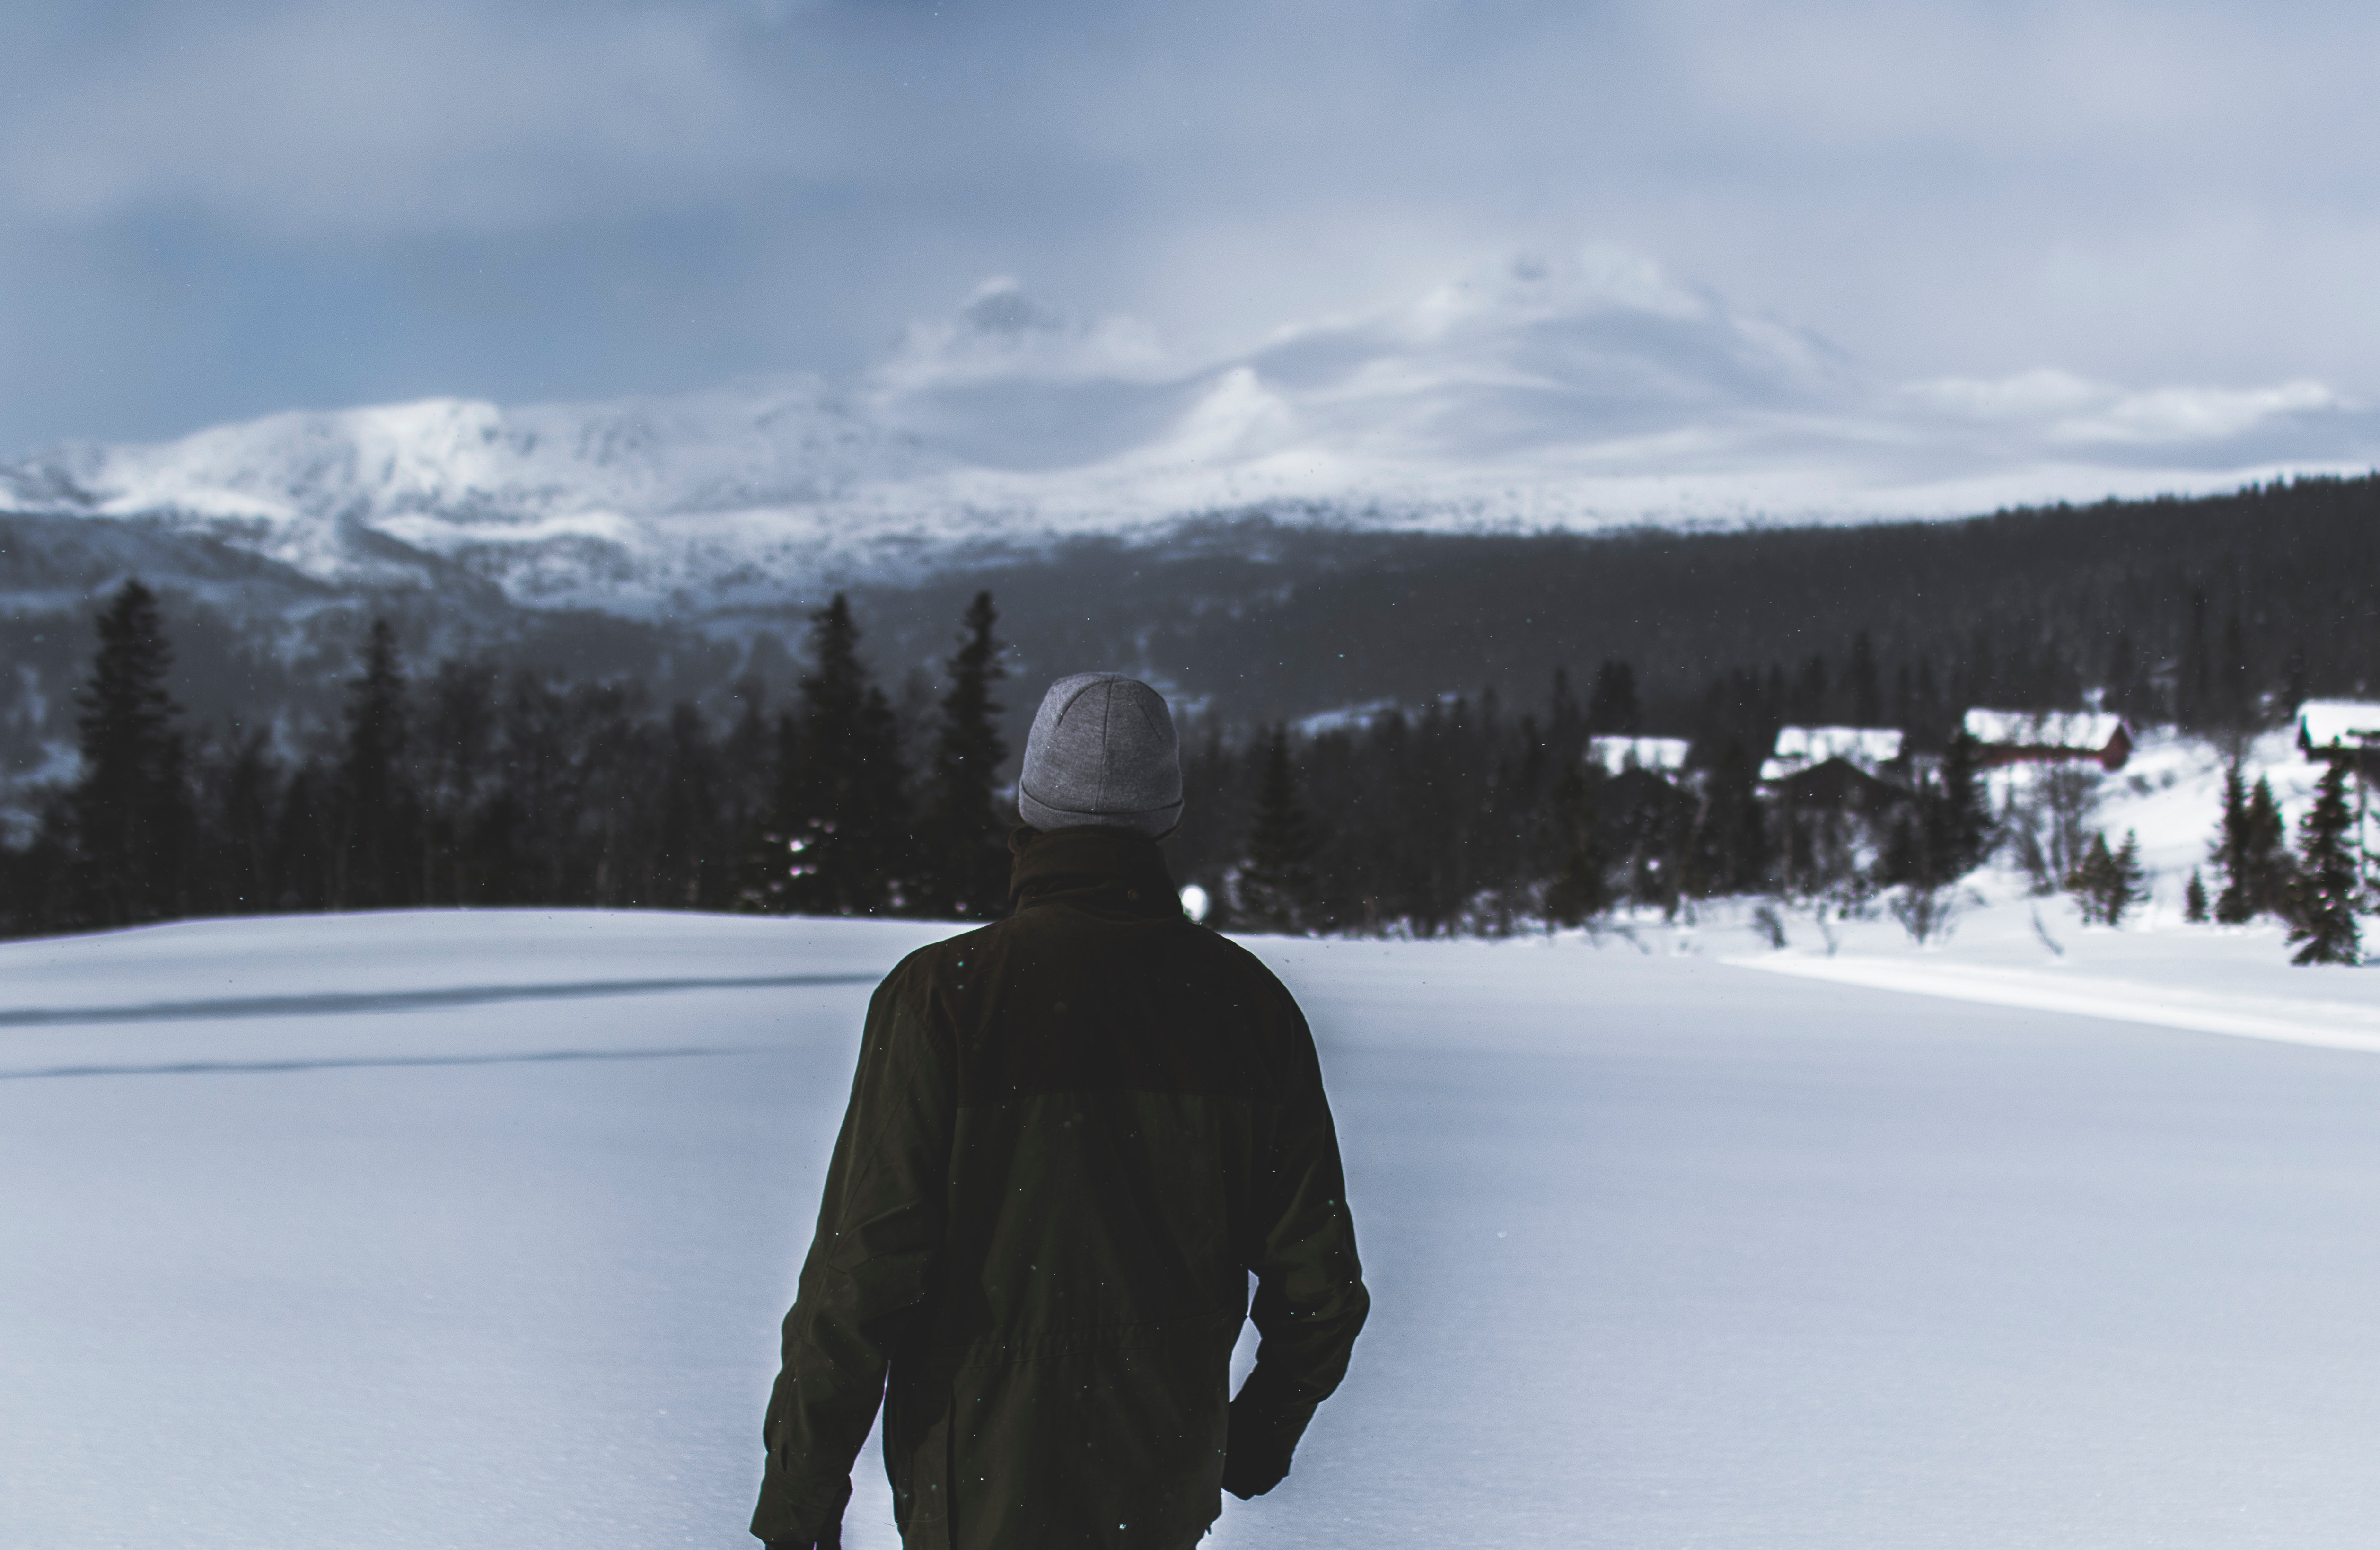 Man Wearing Black Jacket Walking in the Snow, Clouds, Snowy, Scenic, Slope, HQ Photo